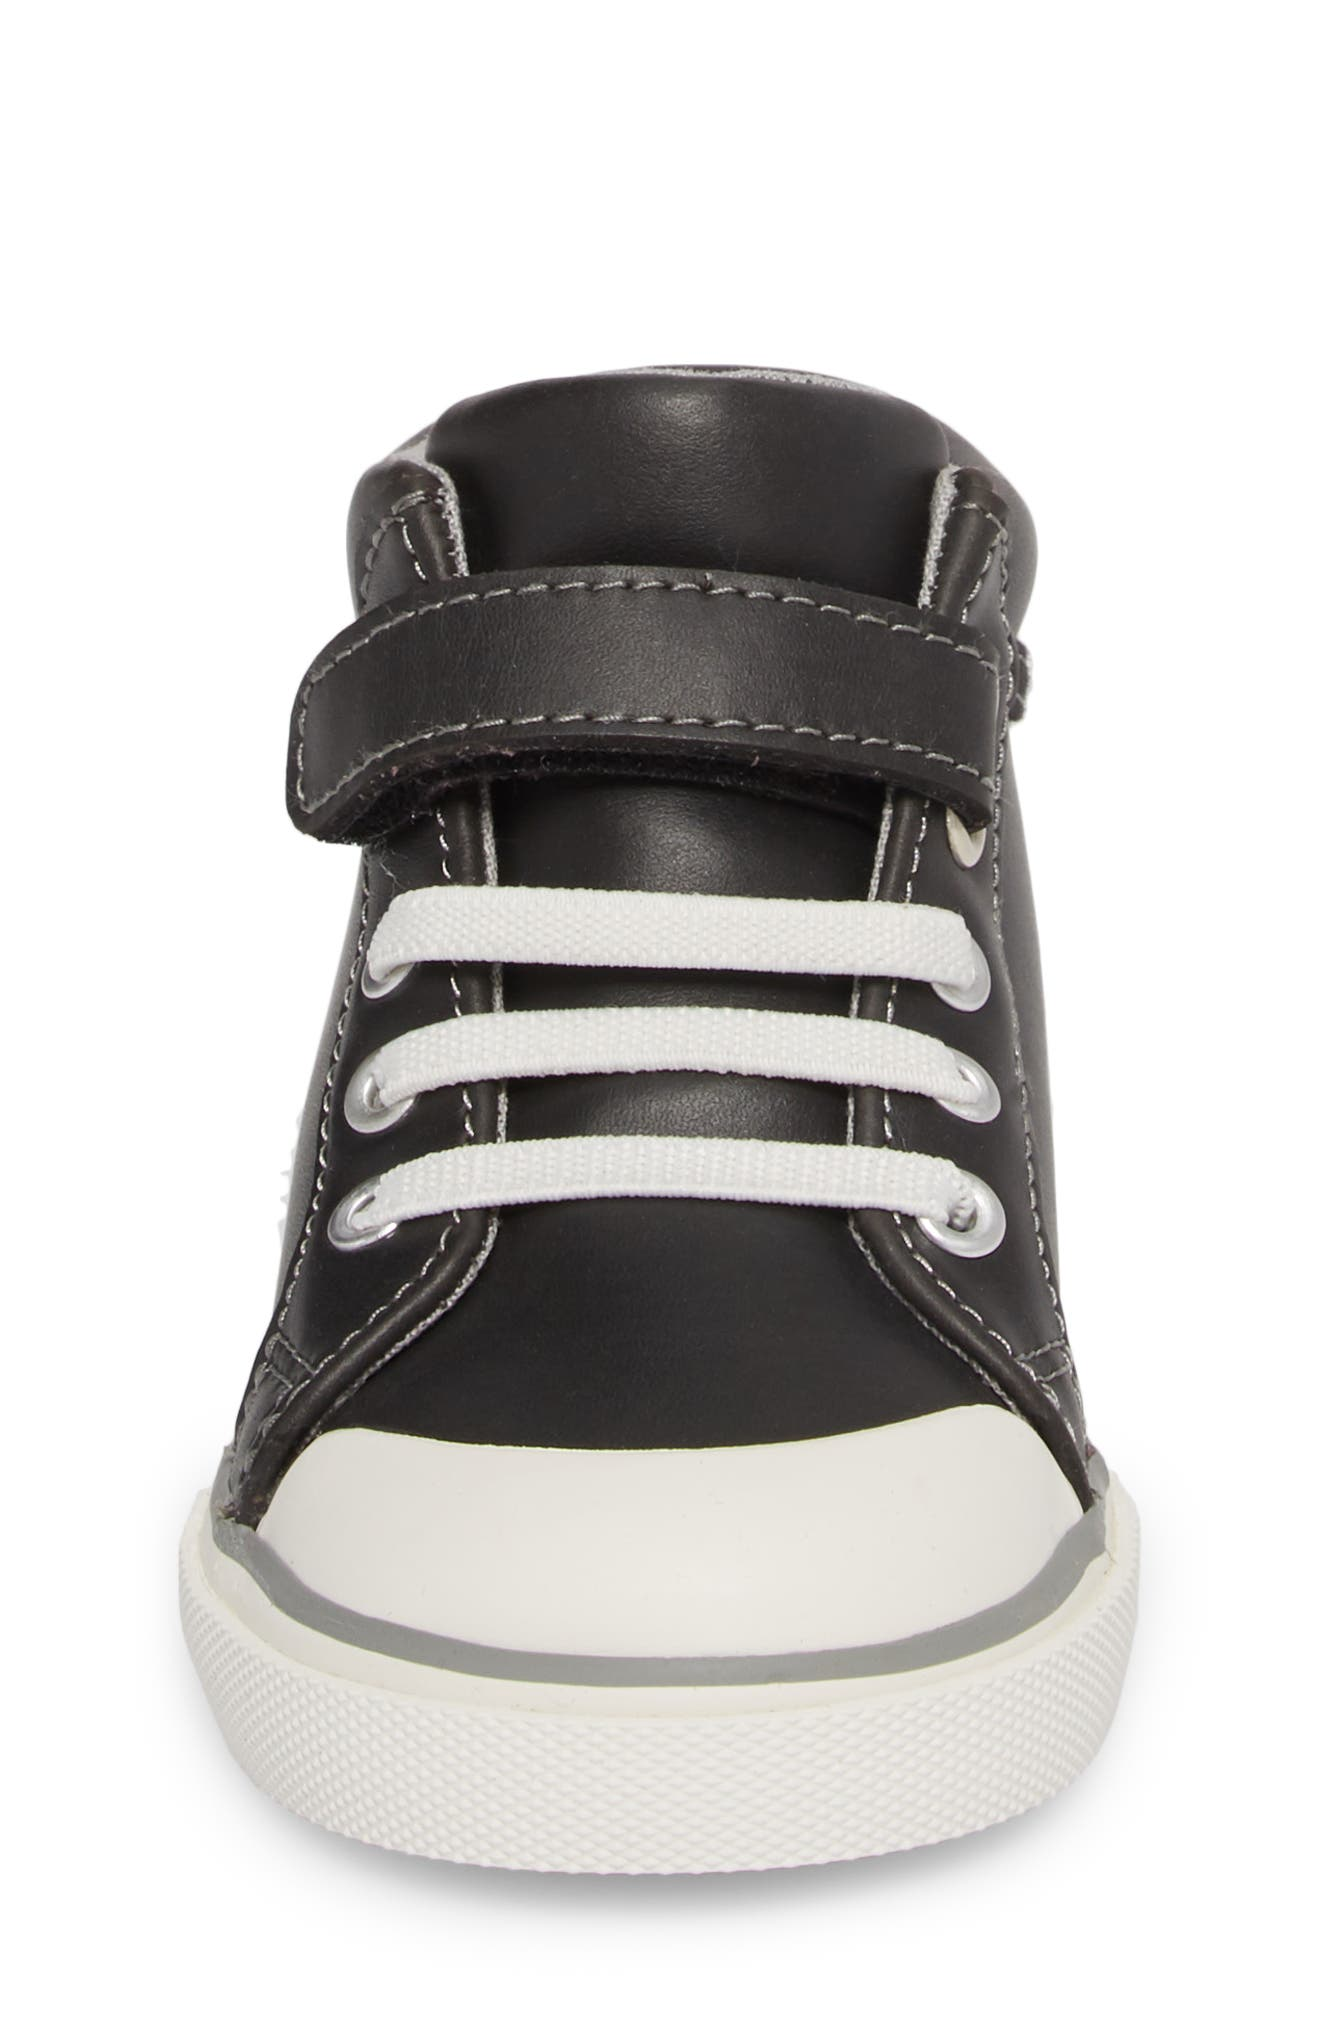 SEE KAI RUN, Peyton High Top Sneaker, Alternate thumbnail 4, color, BLACK LEATHER